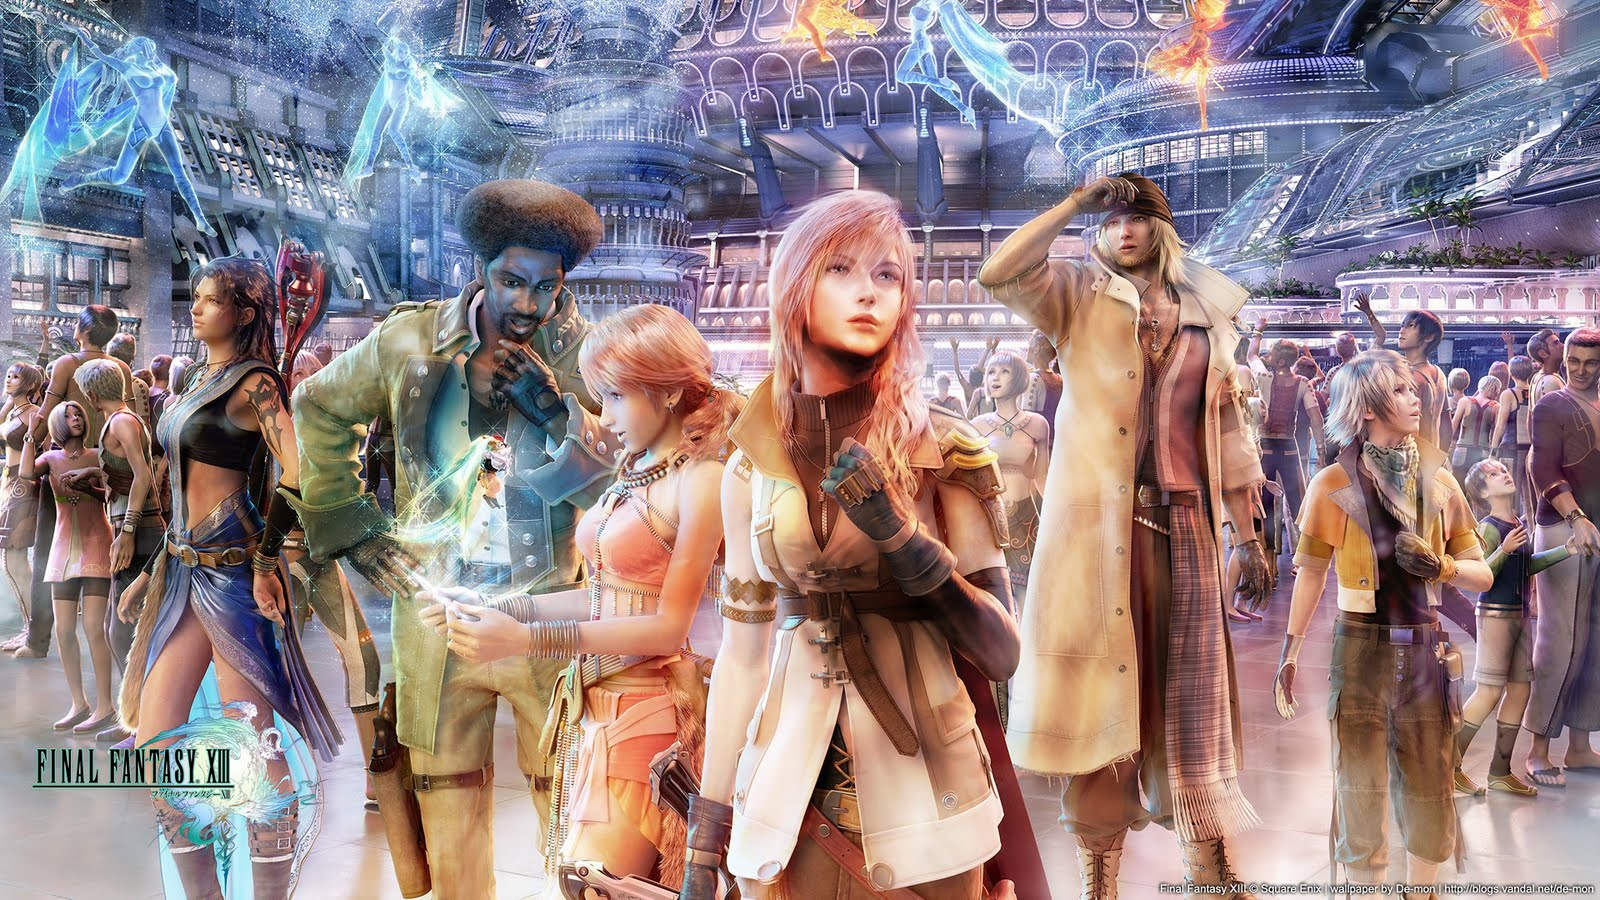 Final Fantasy XIII wallpapers and images - wallpapers